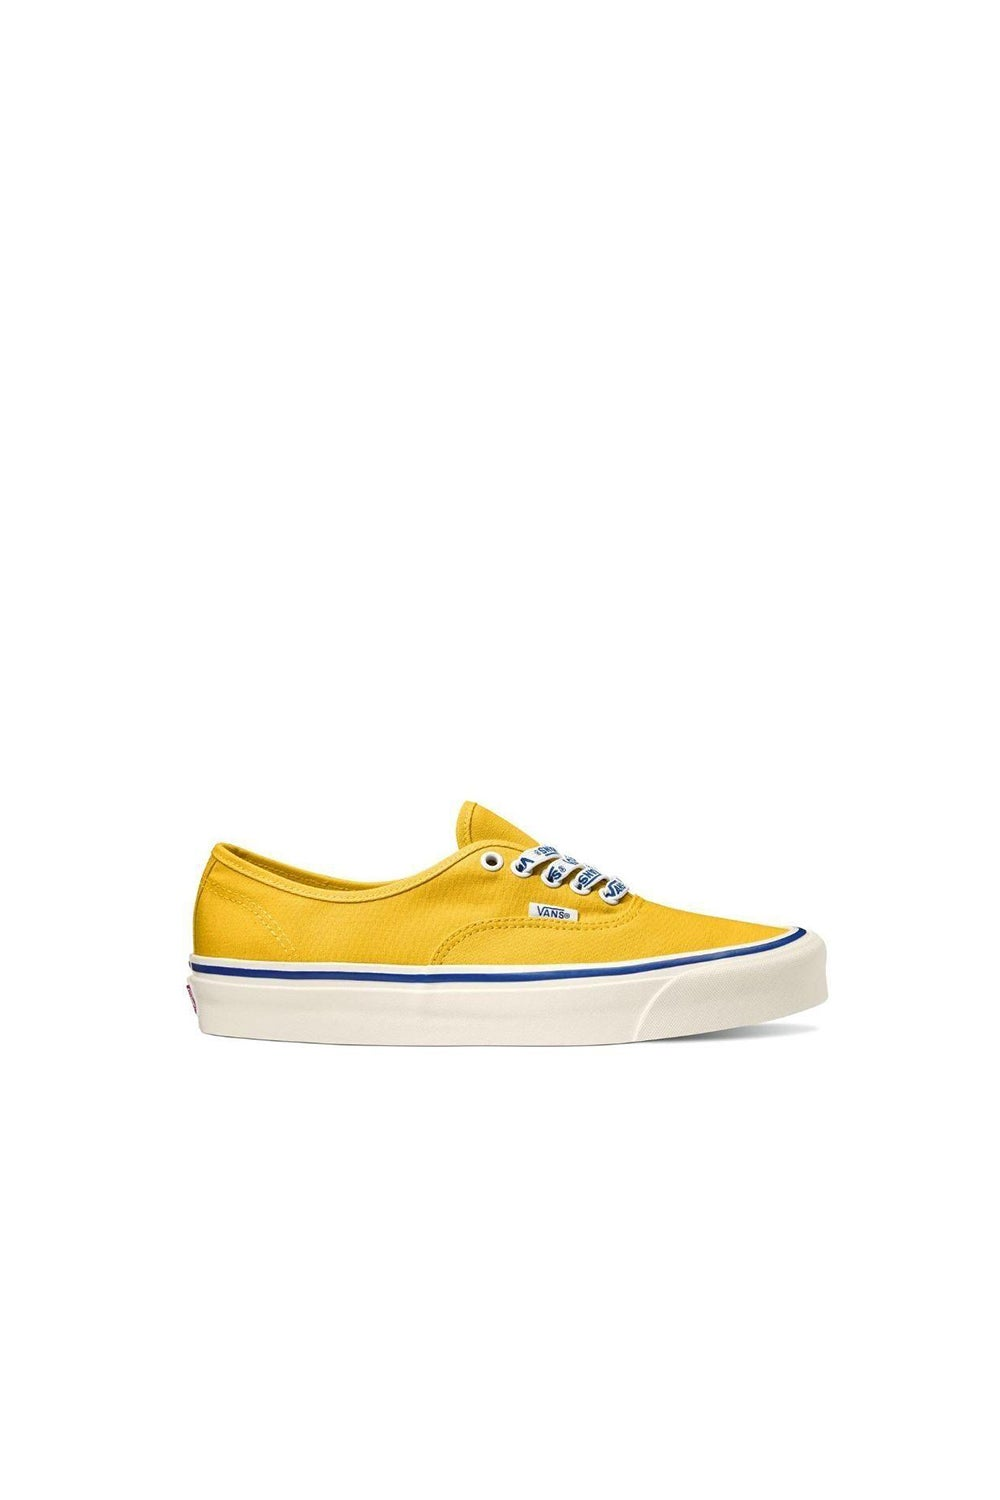 Vans Authentic 44 DX Anaheim Factoy OG Yellow/OG Vans Lace